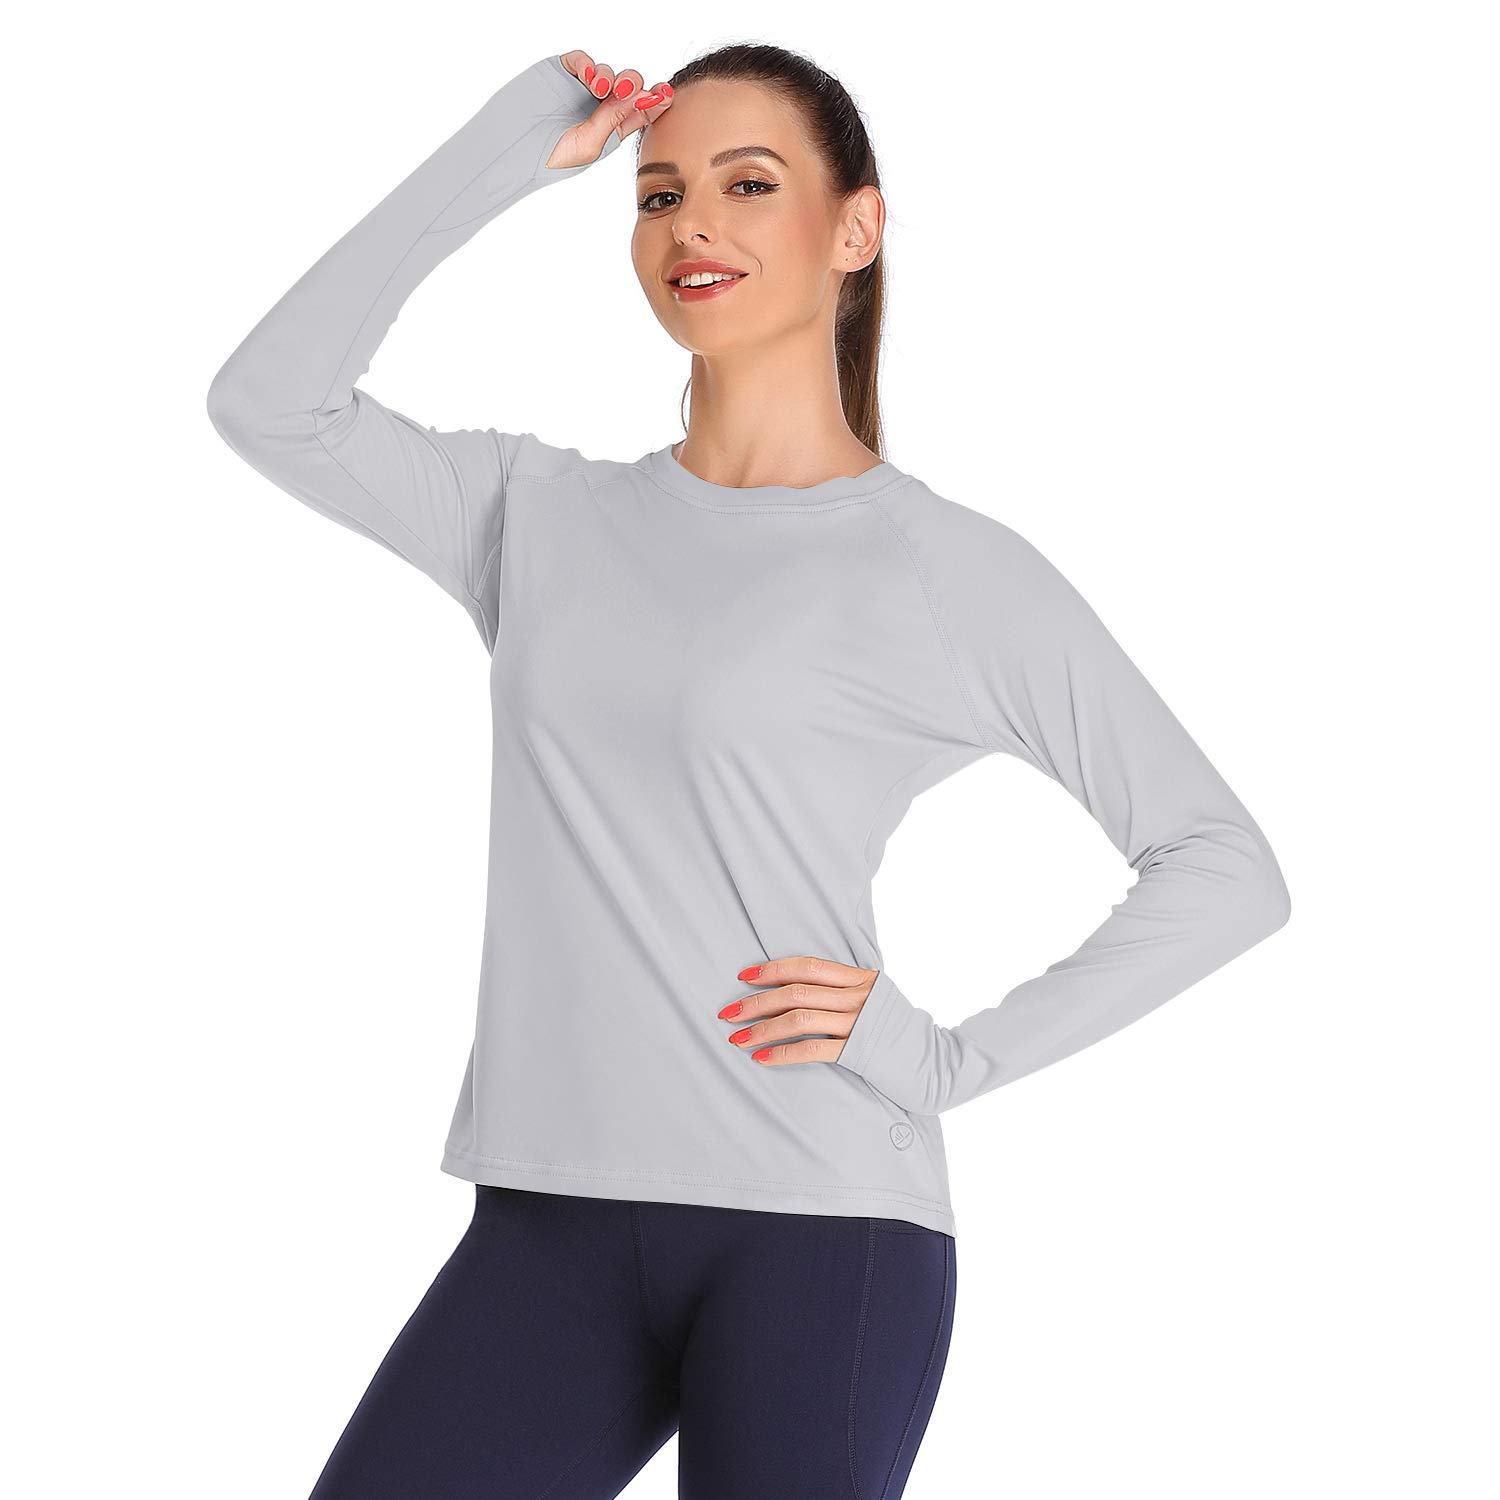 DAYOUNG Womens UPF 50+ UV Sun Protection Running Hiking Outdoors Performance Long Sleeve T-Shirt Athletic Top with Thumb Hole YWT11 Light Grey L by DAYOUNG